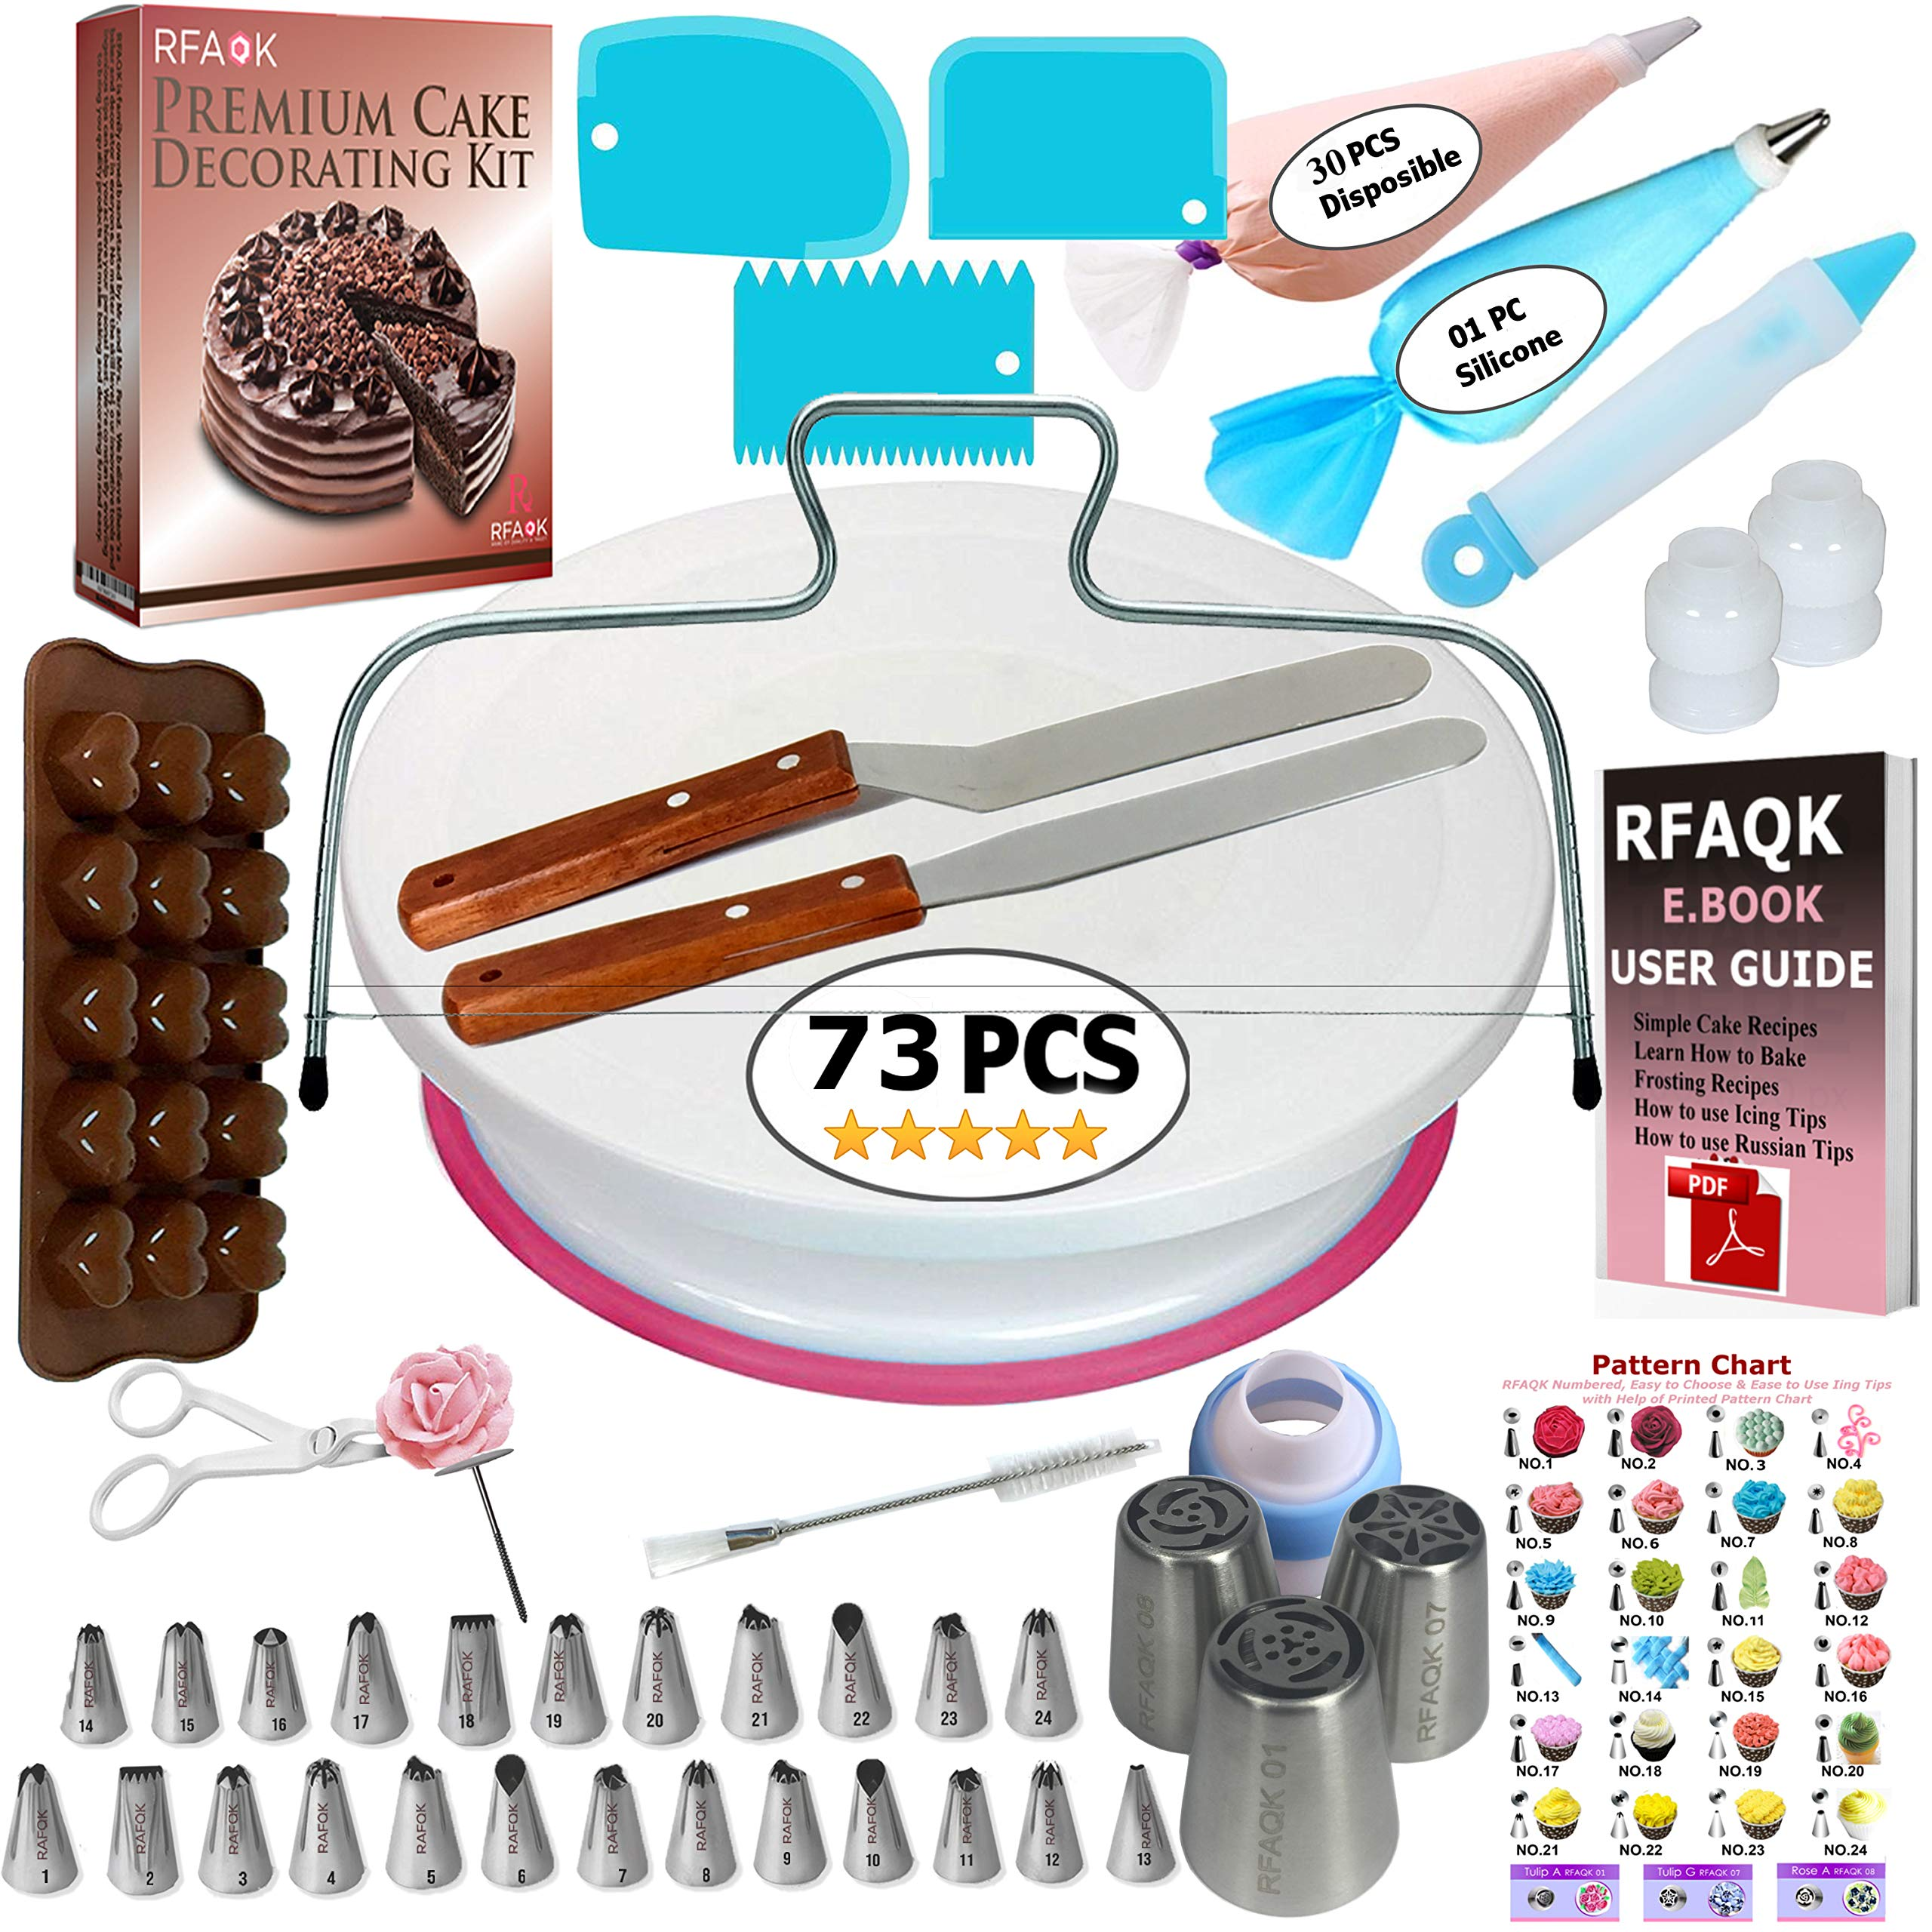 73 pcs Cake Decorating Supplies Kit for Beginners-1 Turntable stand-24 Numbered icing tips with pattern chart and E.Book-1 Cake Leveler-Straight & Angled Spatula-3 Russian Piping nozzles-Baking tools by RFAQK